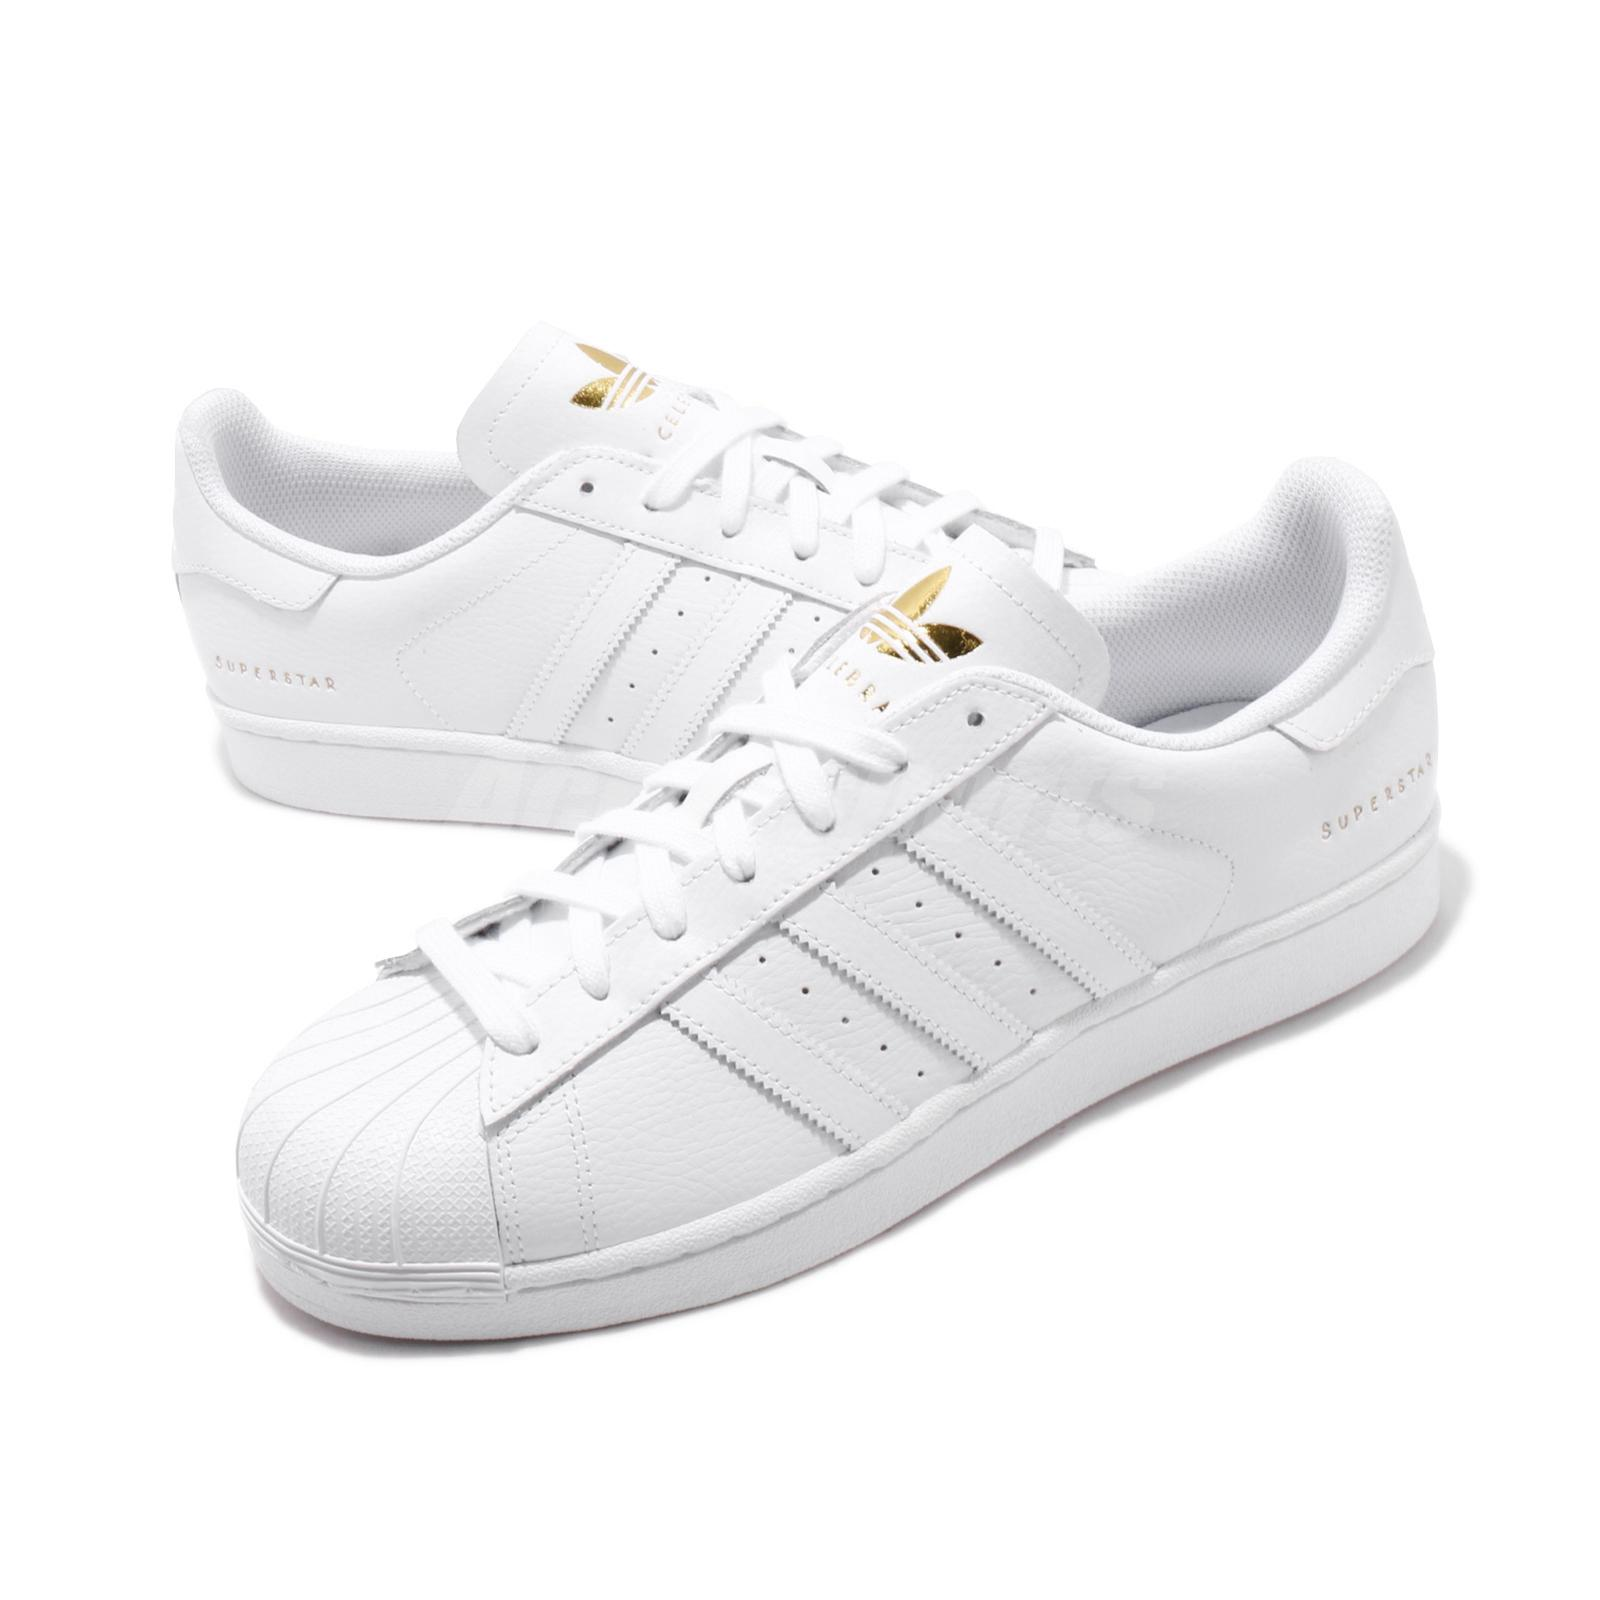 adidas superstar colours south africa